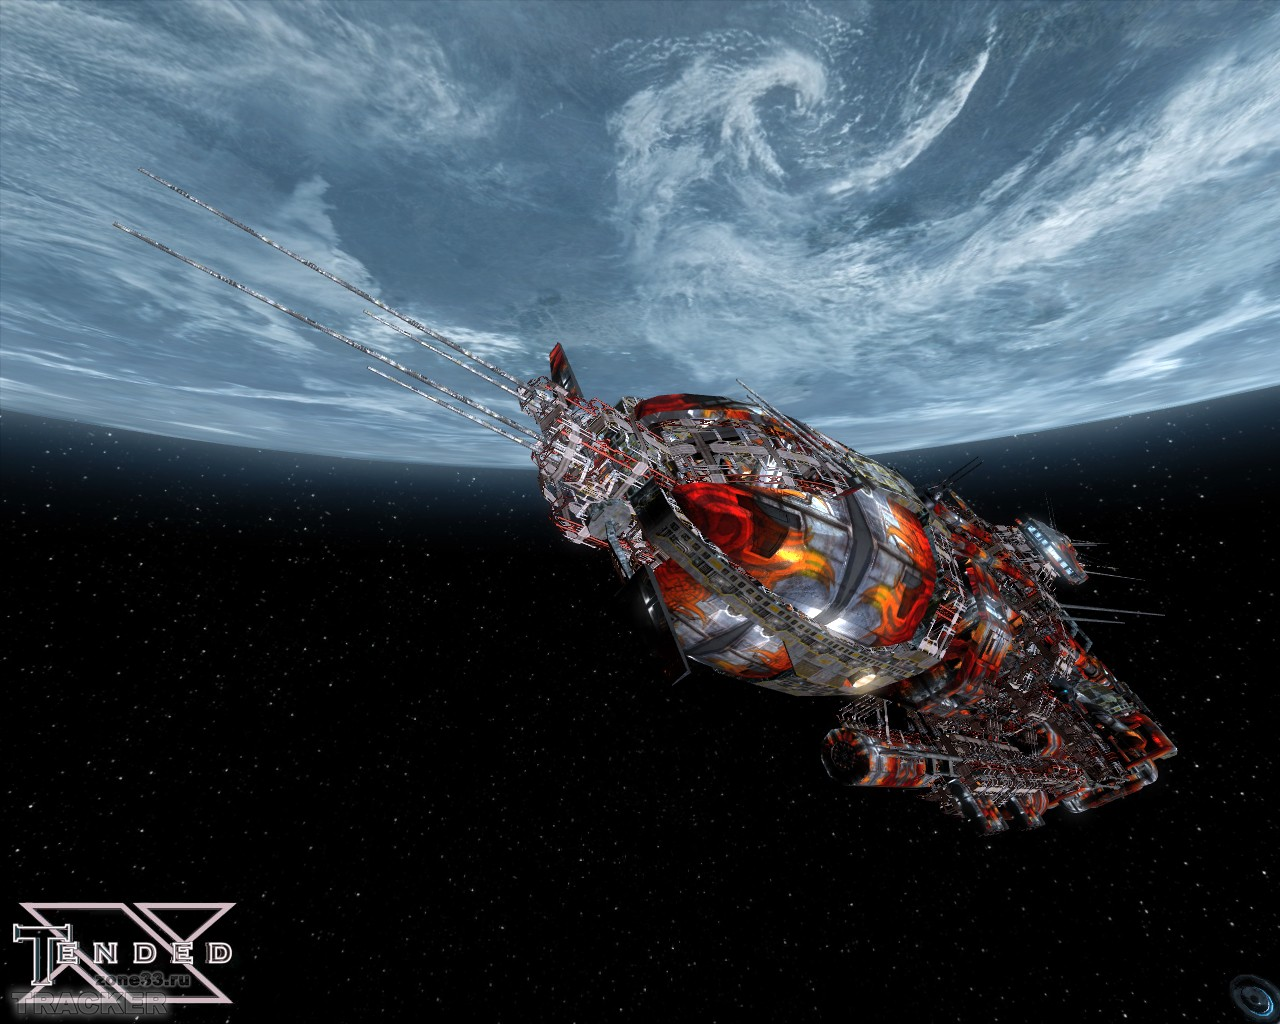 Egosoft has issued a new patch for X3: Terran Conflict, updating to v2 7. U